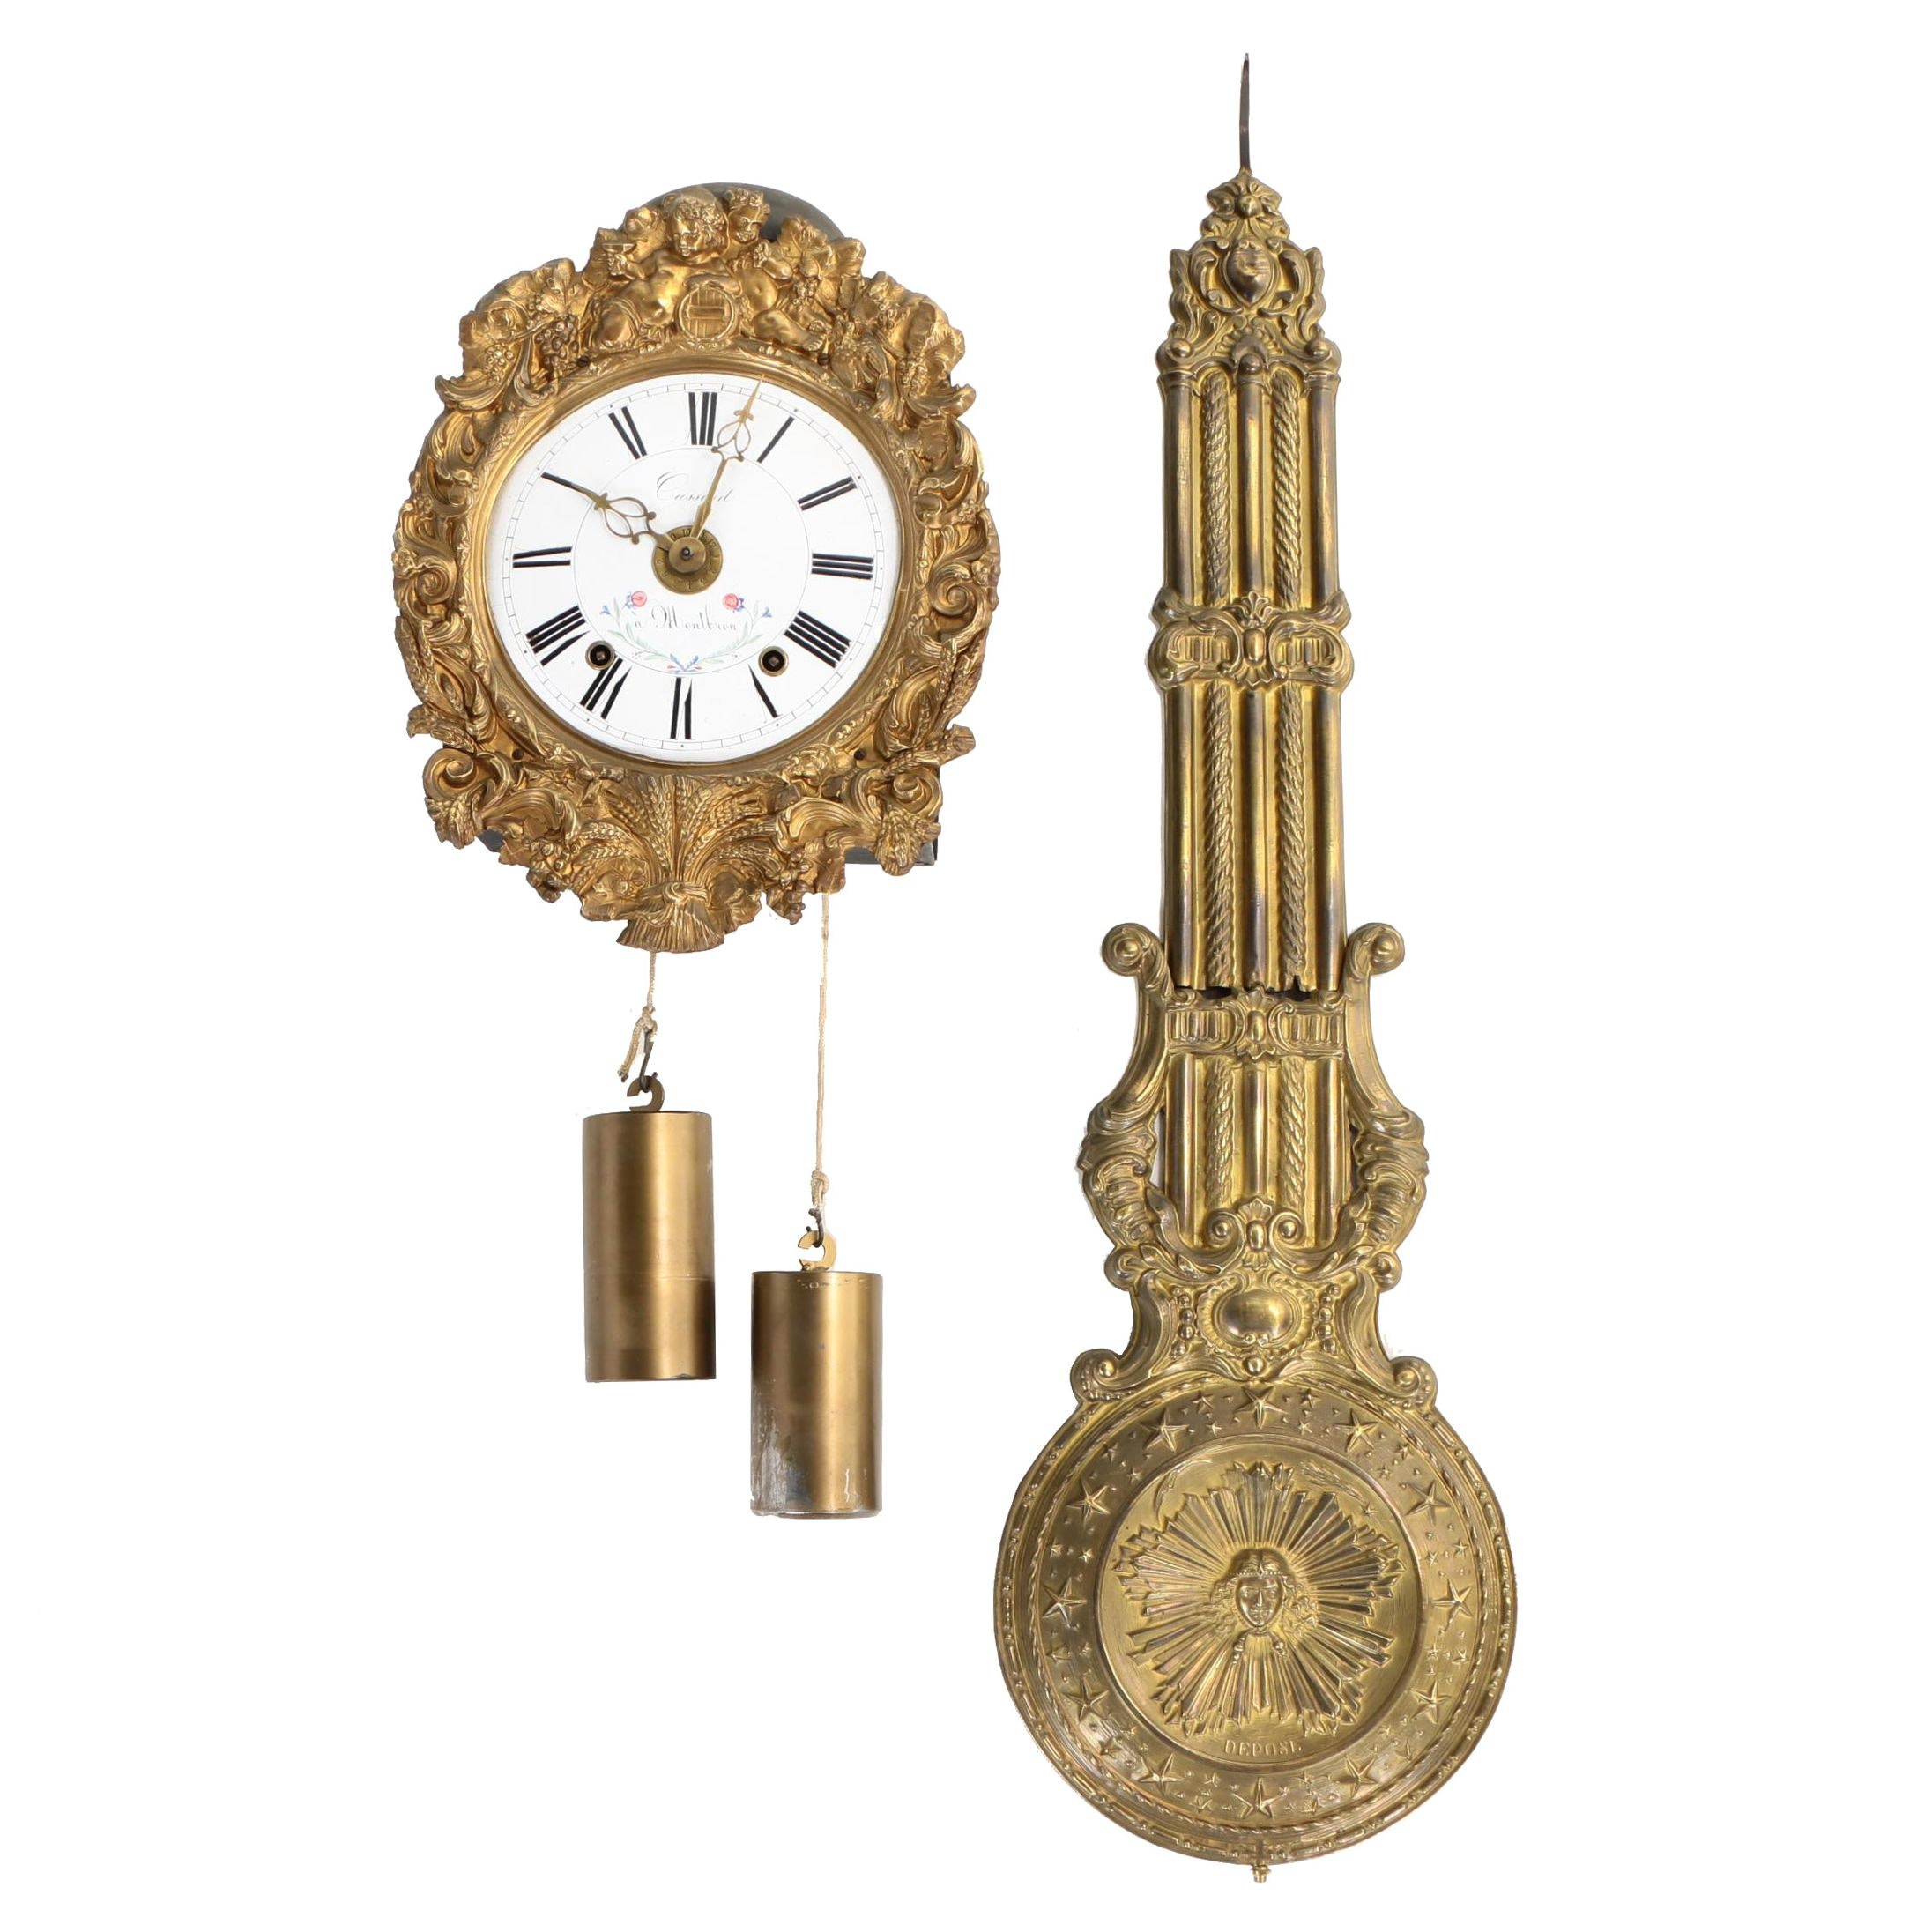 French Repoussé Brass and Enamel Comtoise Wall Clock, 19th Century